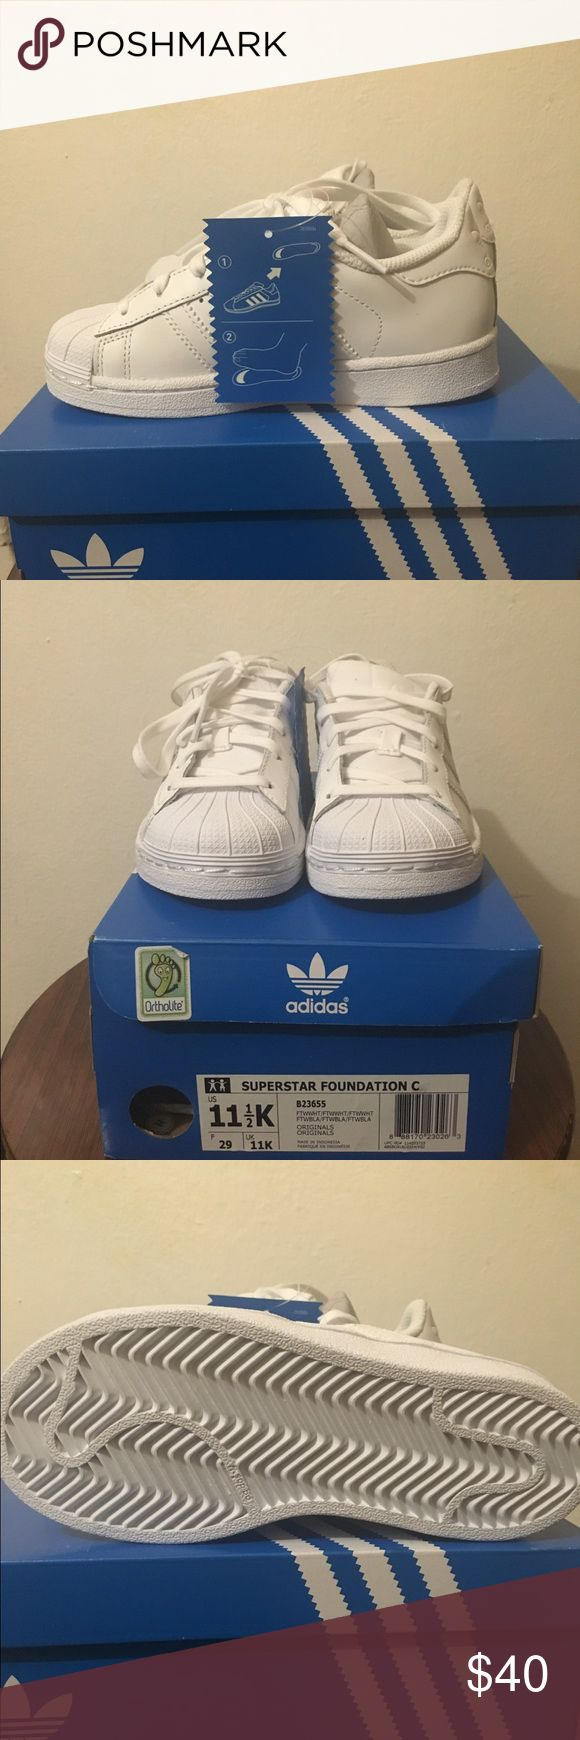 Adidas SUPERSTAR FOUNDATION SHOES The shoes are New with original tags. Boys size 11 1/2 Adidas Shoes Sneakers